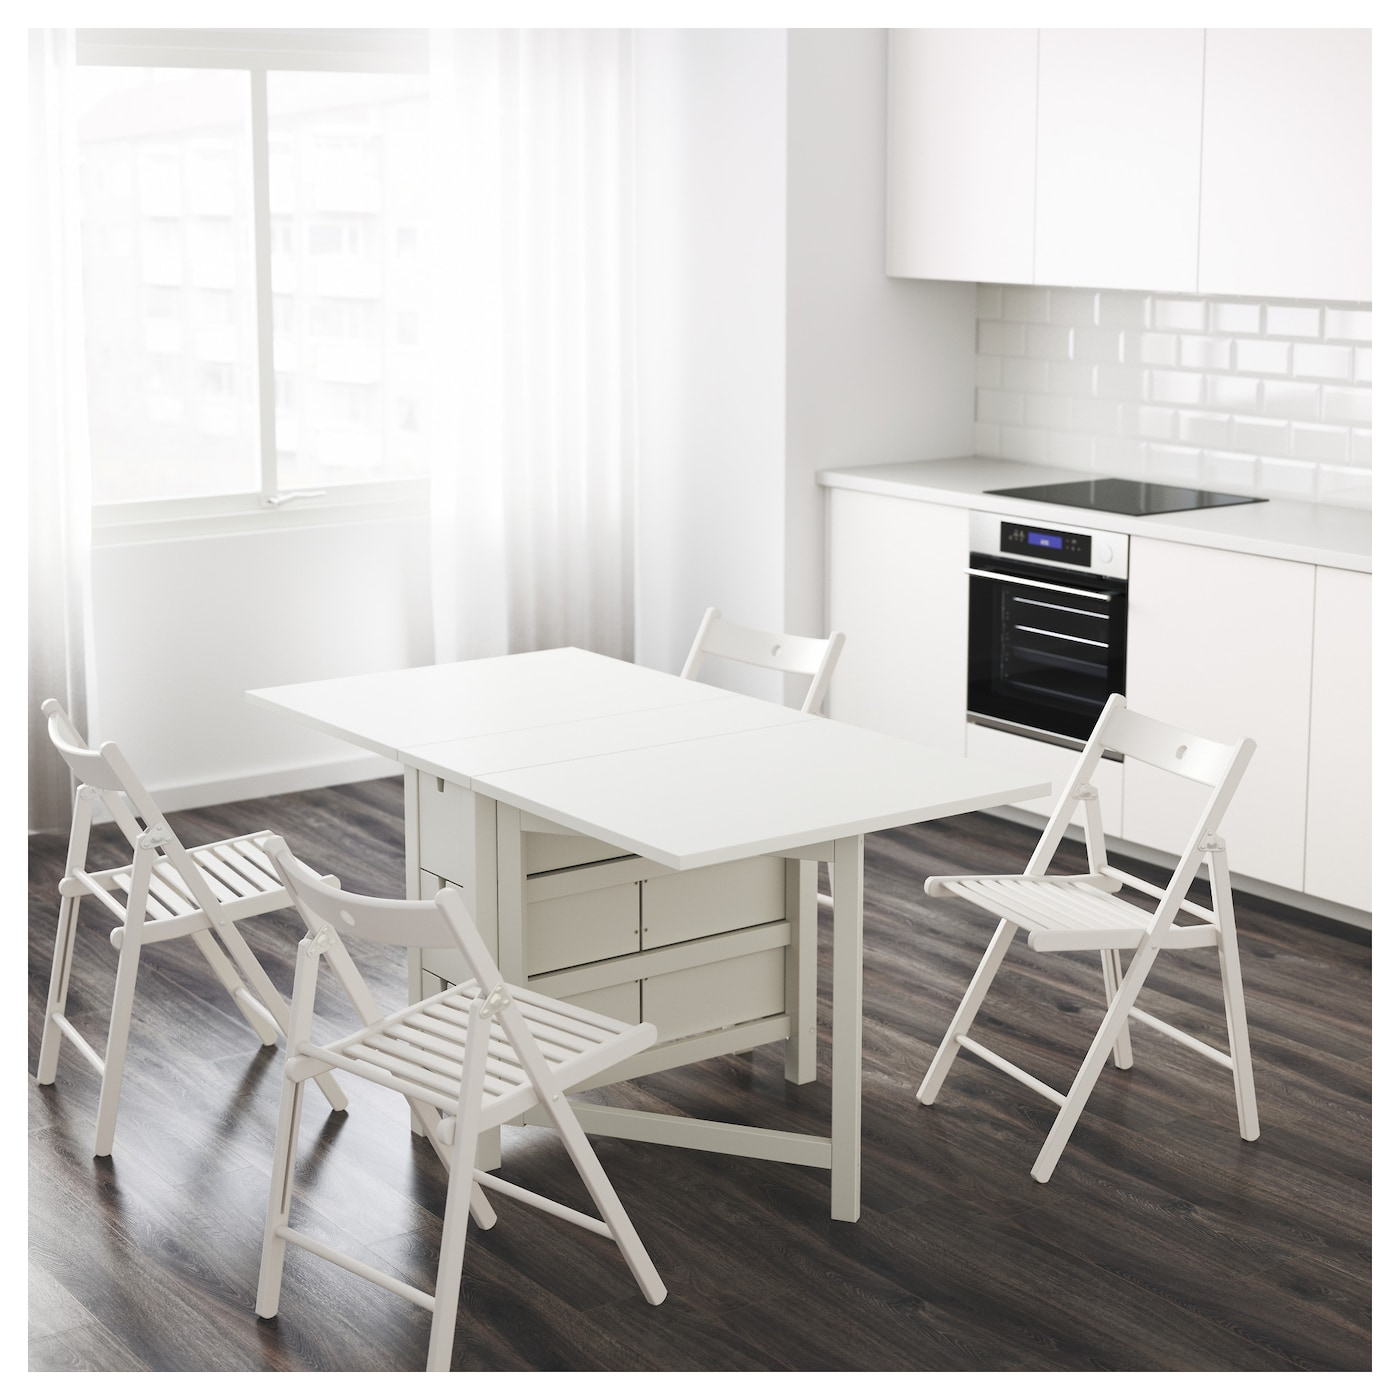 norden table rabat blanc 26 89 152 x 80 cm ikea. Black Bedroom Furniture Sets. Home Design Ideas